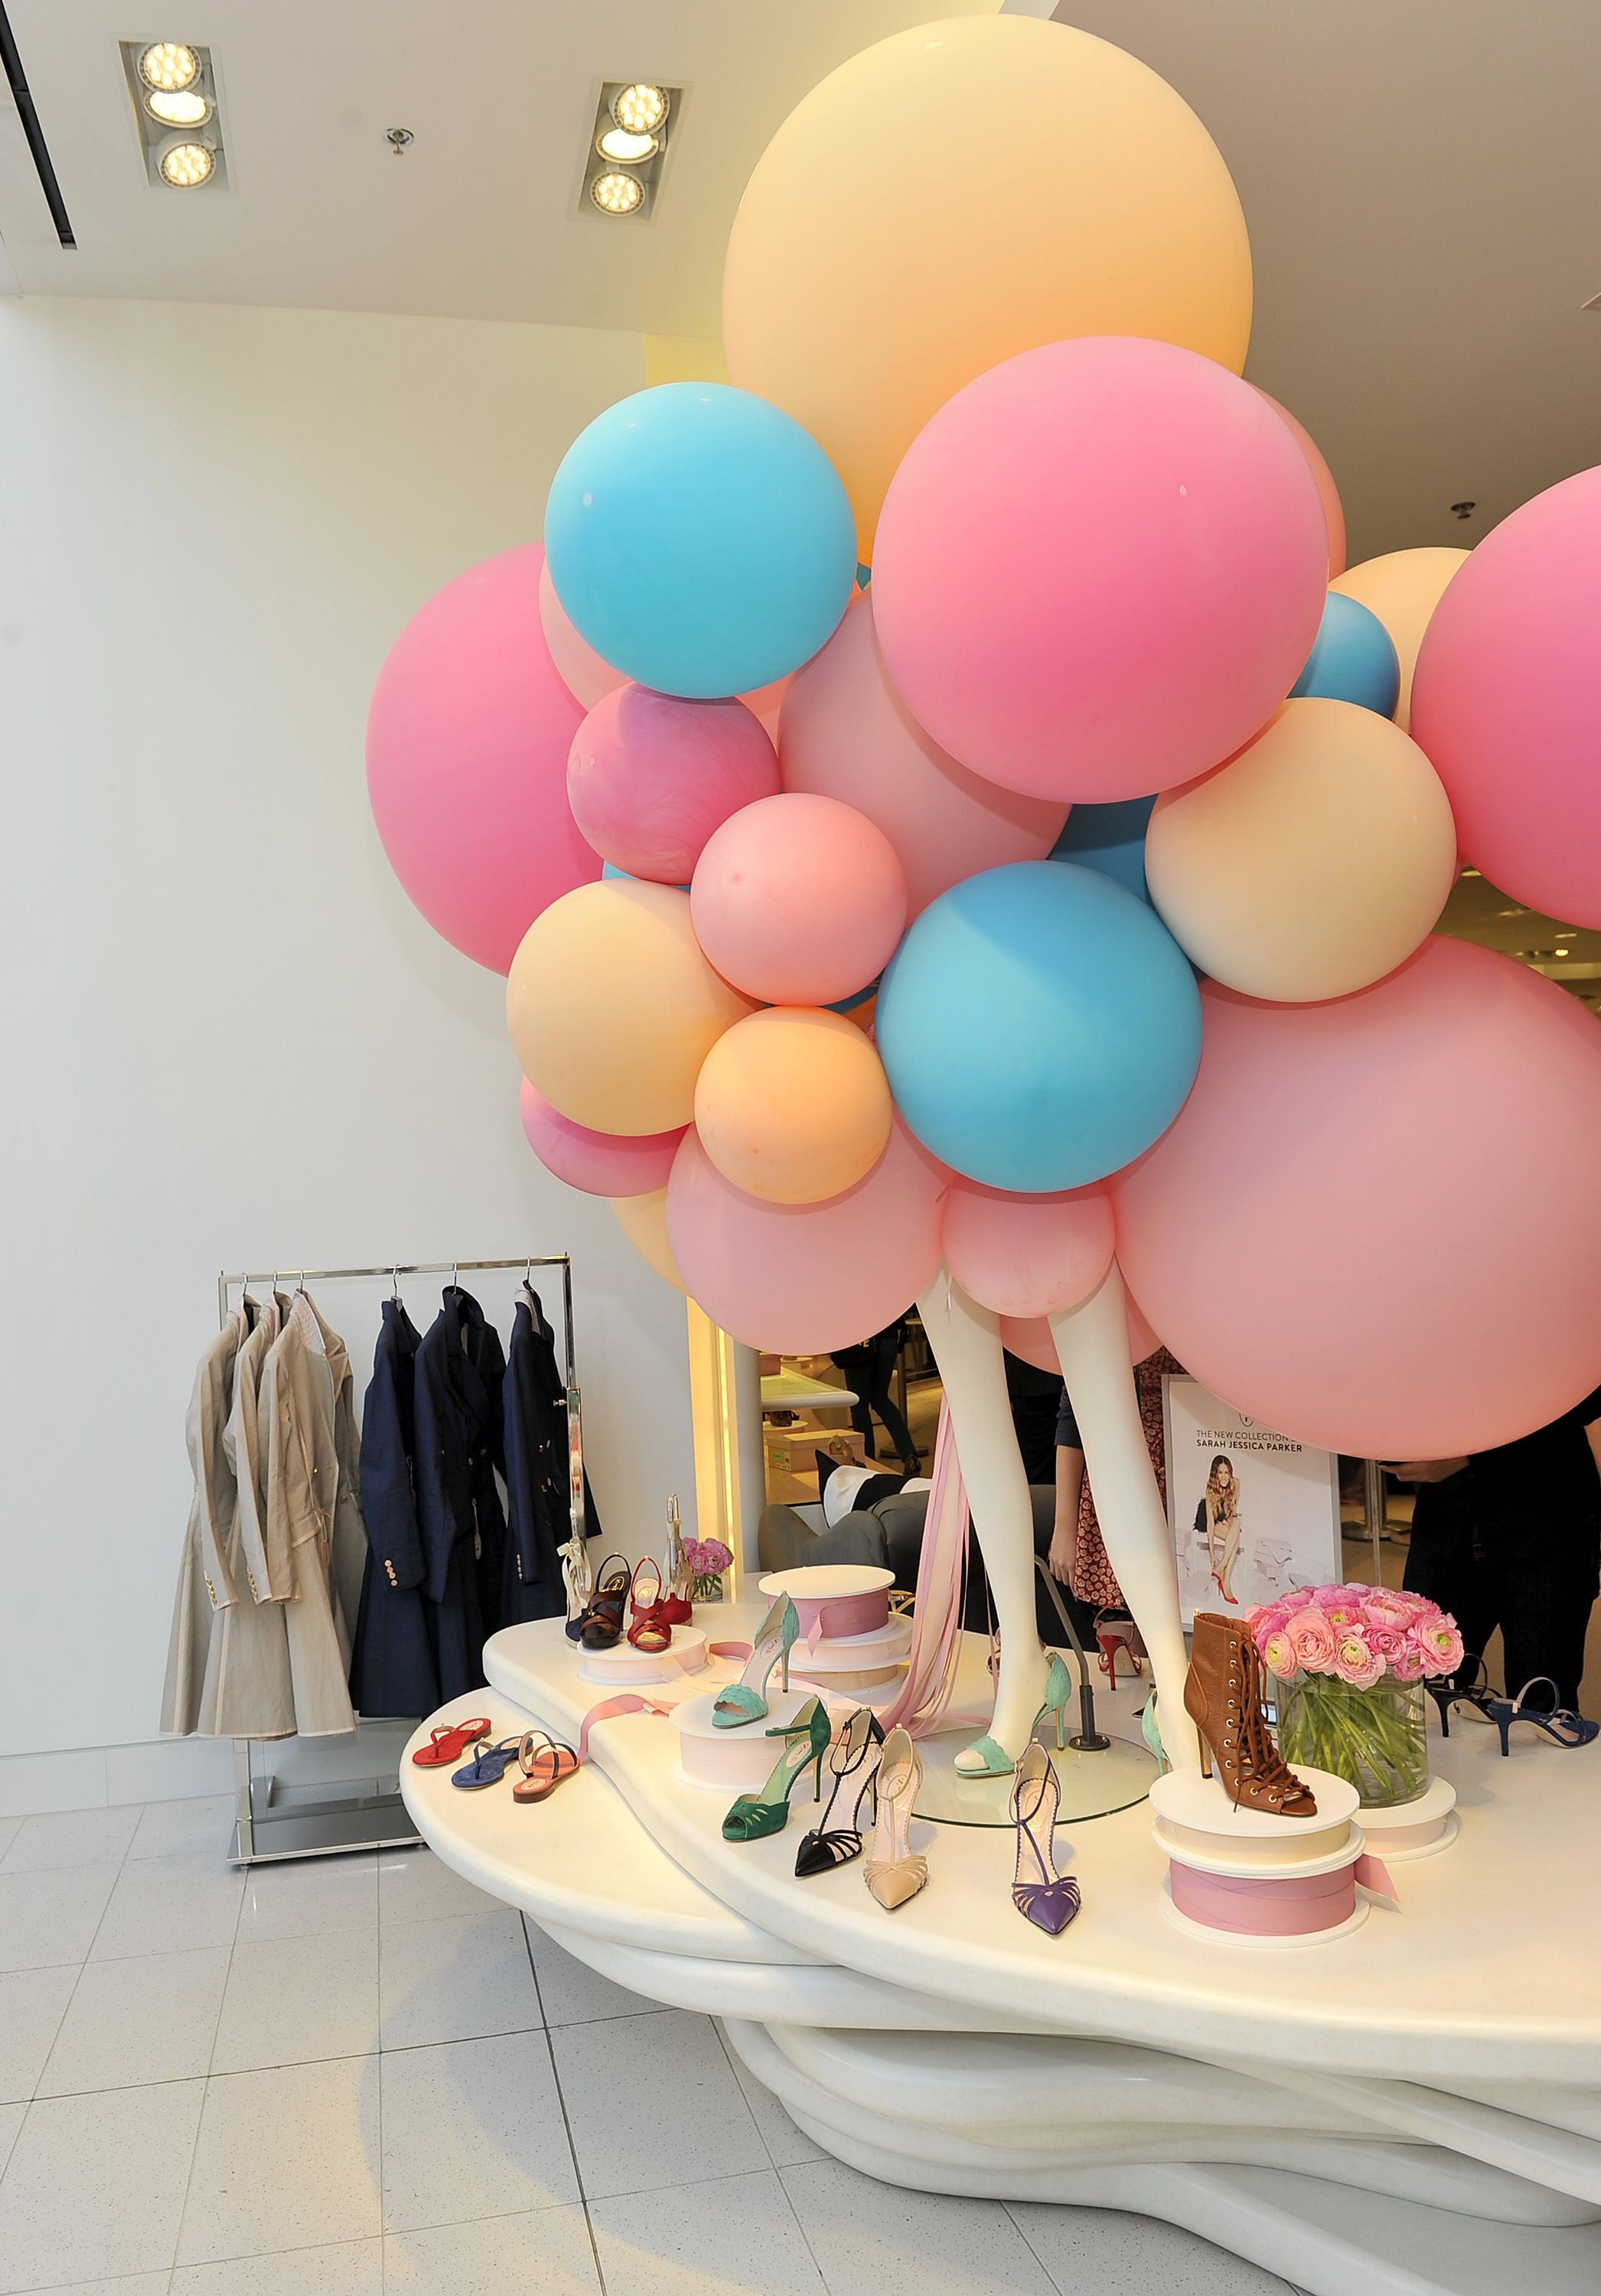 best value 76588 e004f Super cute balloon display for SJP shoes in LA. | SJP: A Day ...